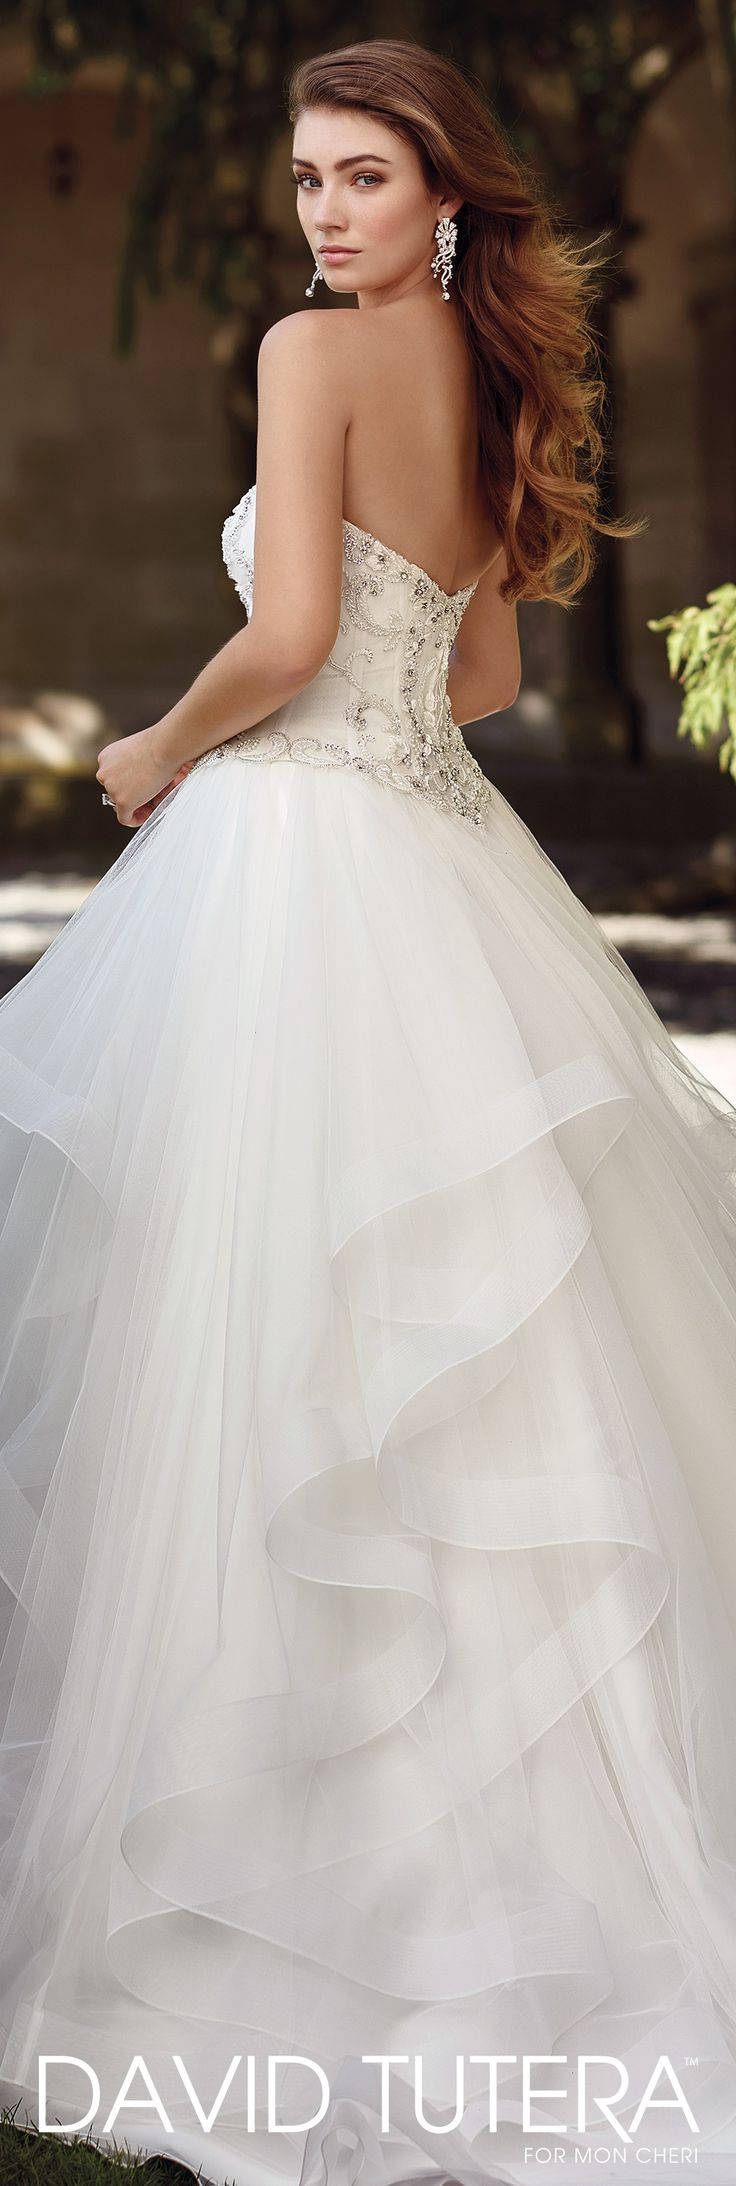 About Asymmetrical Wedding Dresses On Pinterest Wedding Dresses